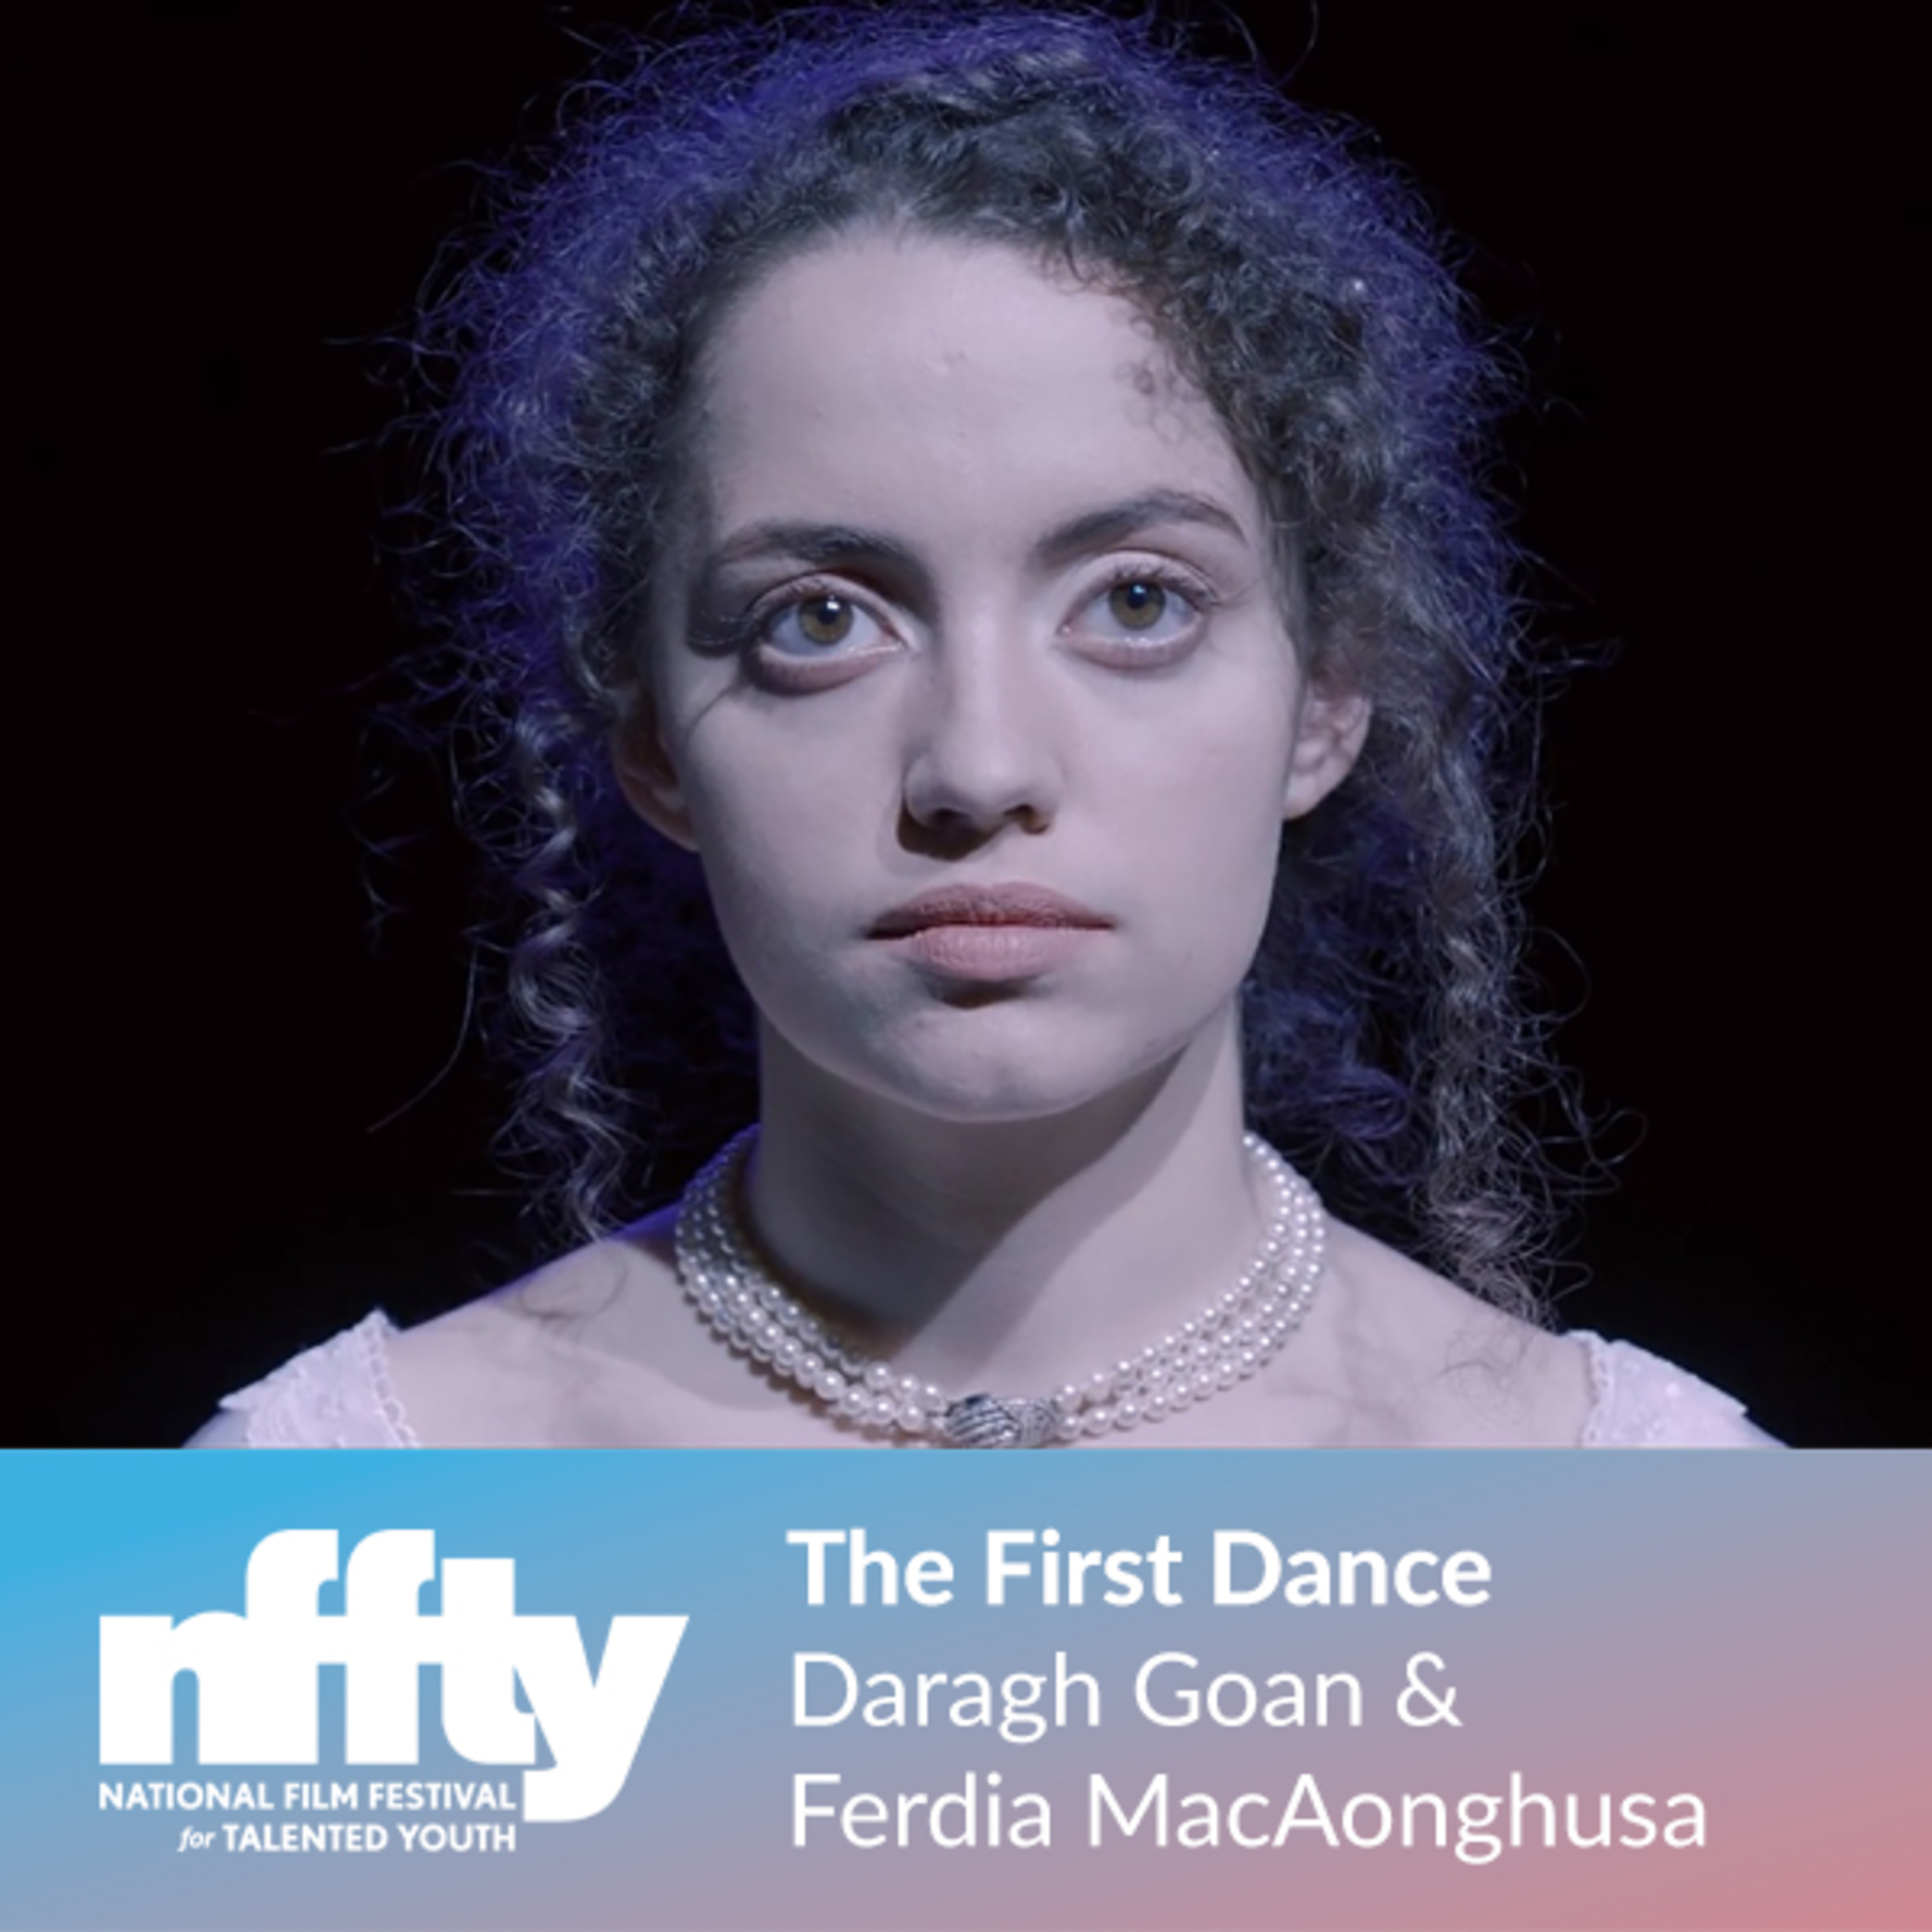 133: The First Dance